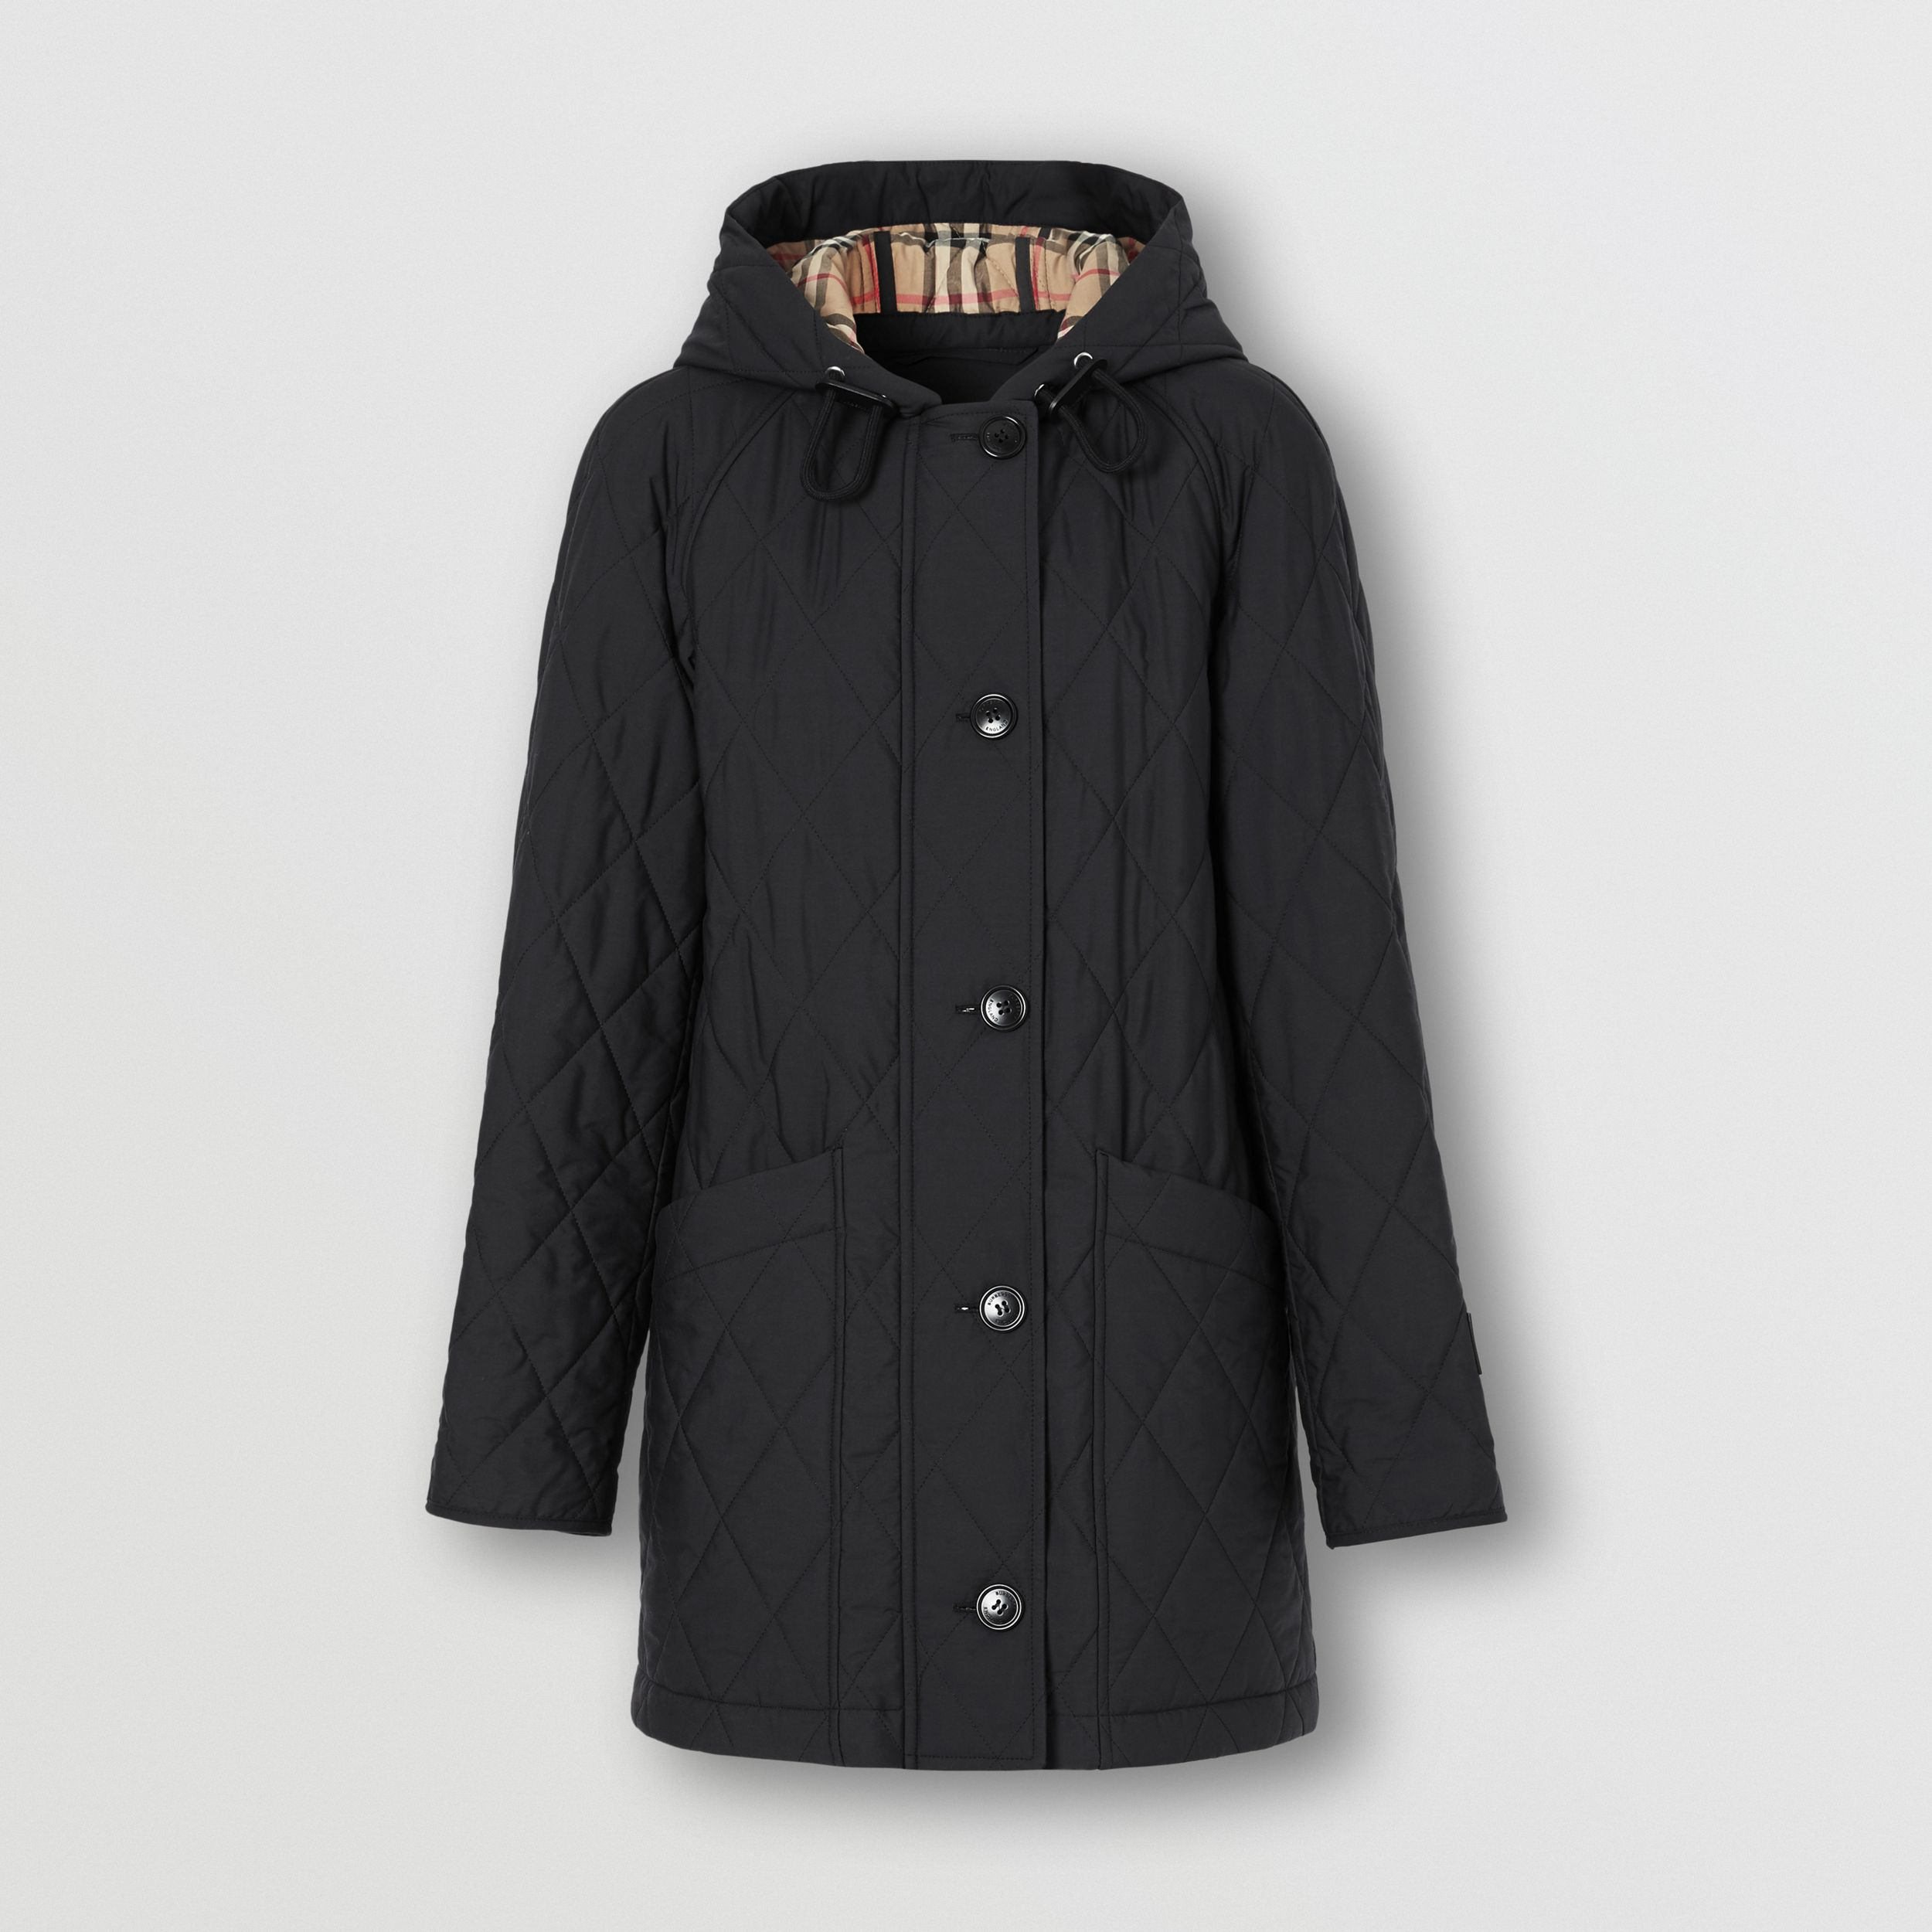 Diamond Quilted Cotton Hooded Coat in Black - Women | Burberry - 4